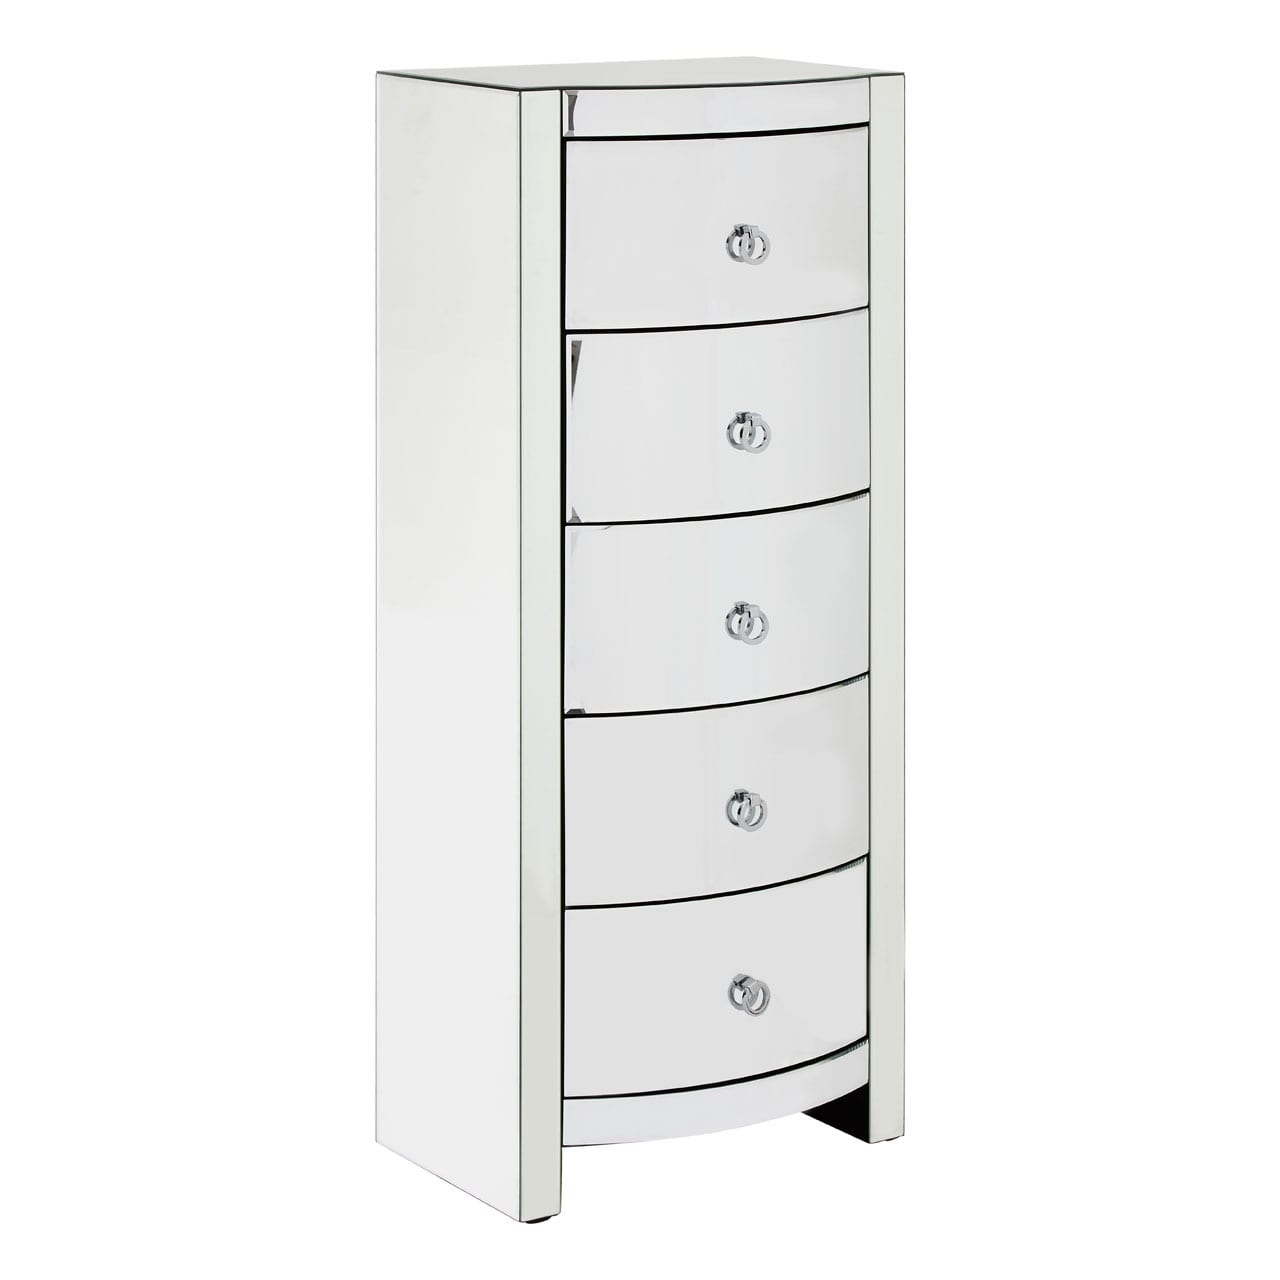 Veneto Curved Tall Boy Drawers